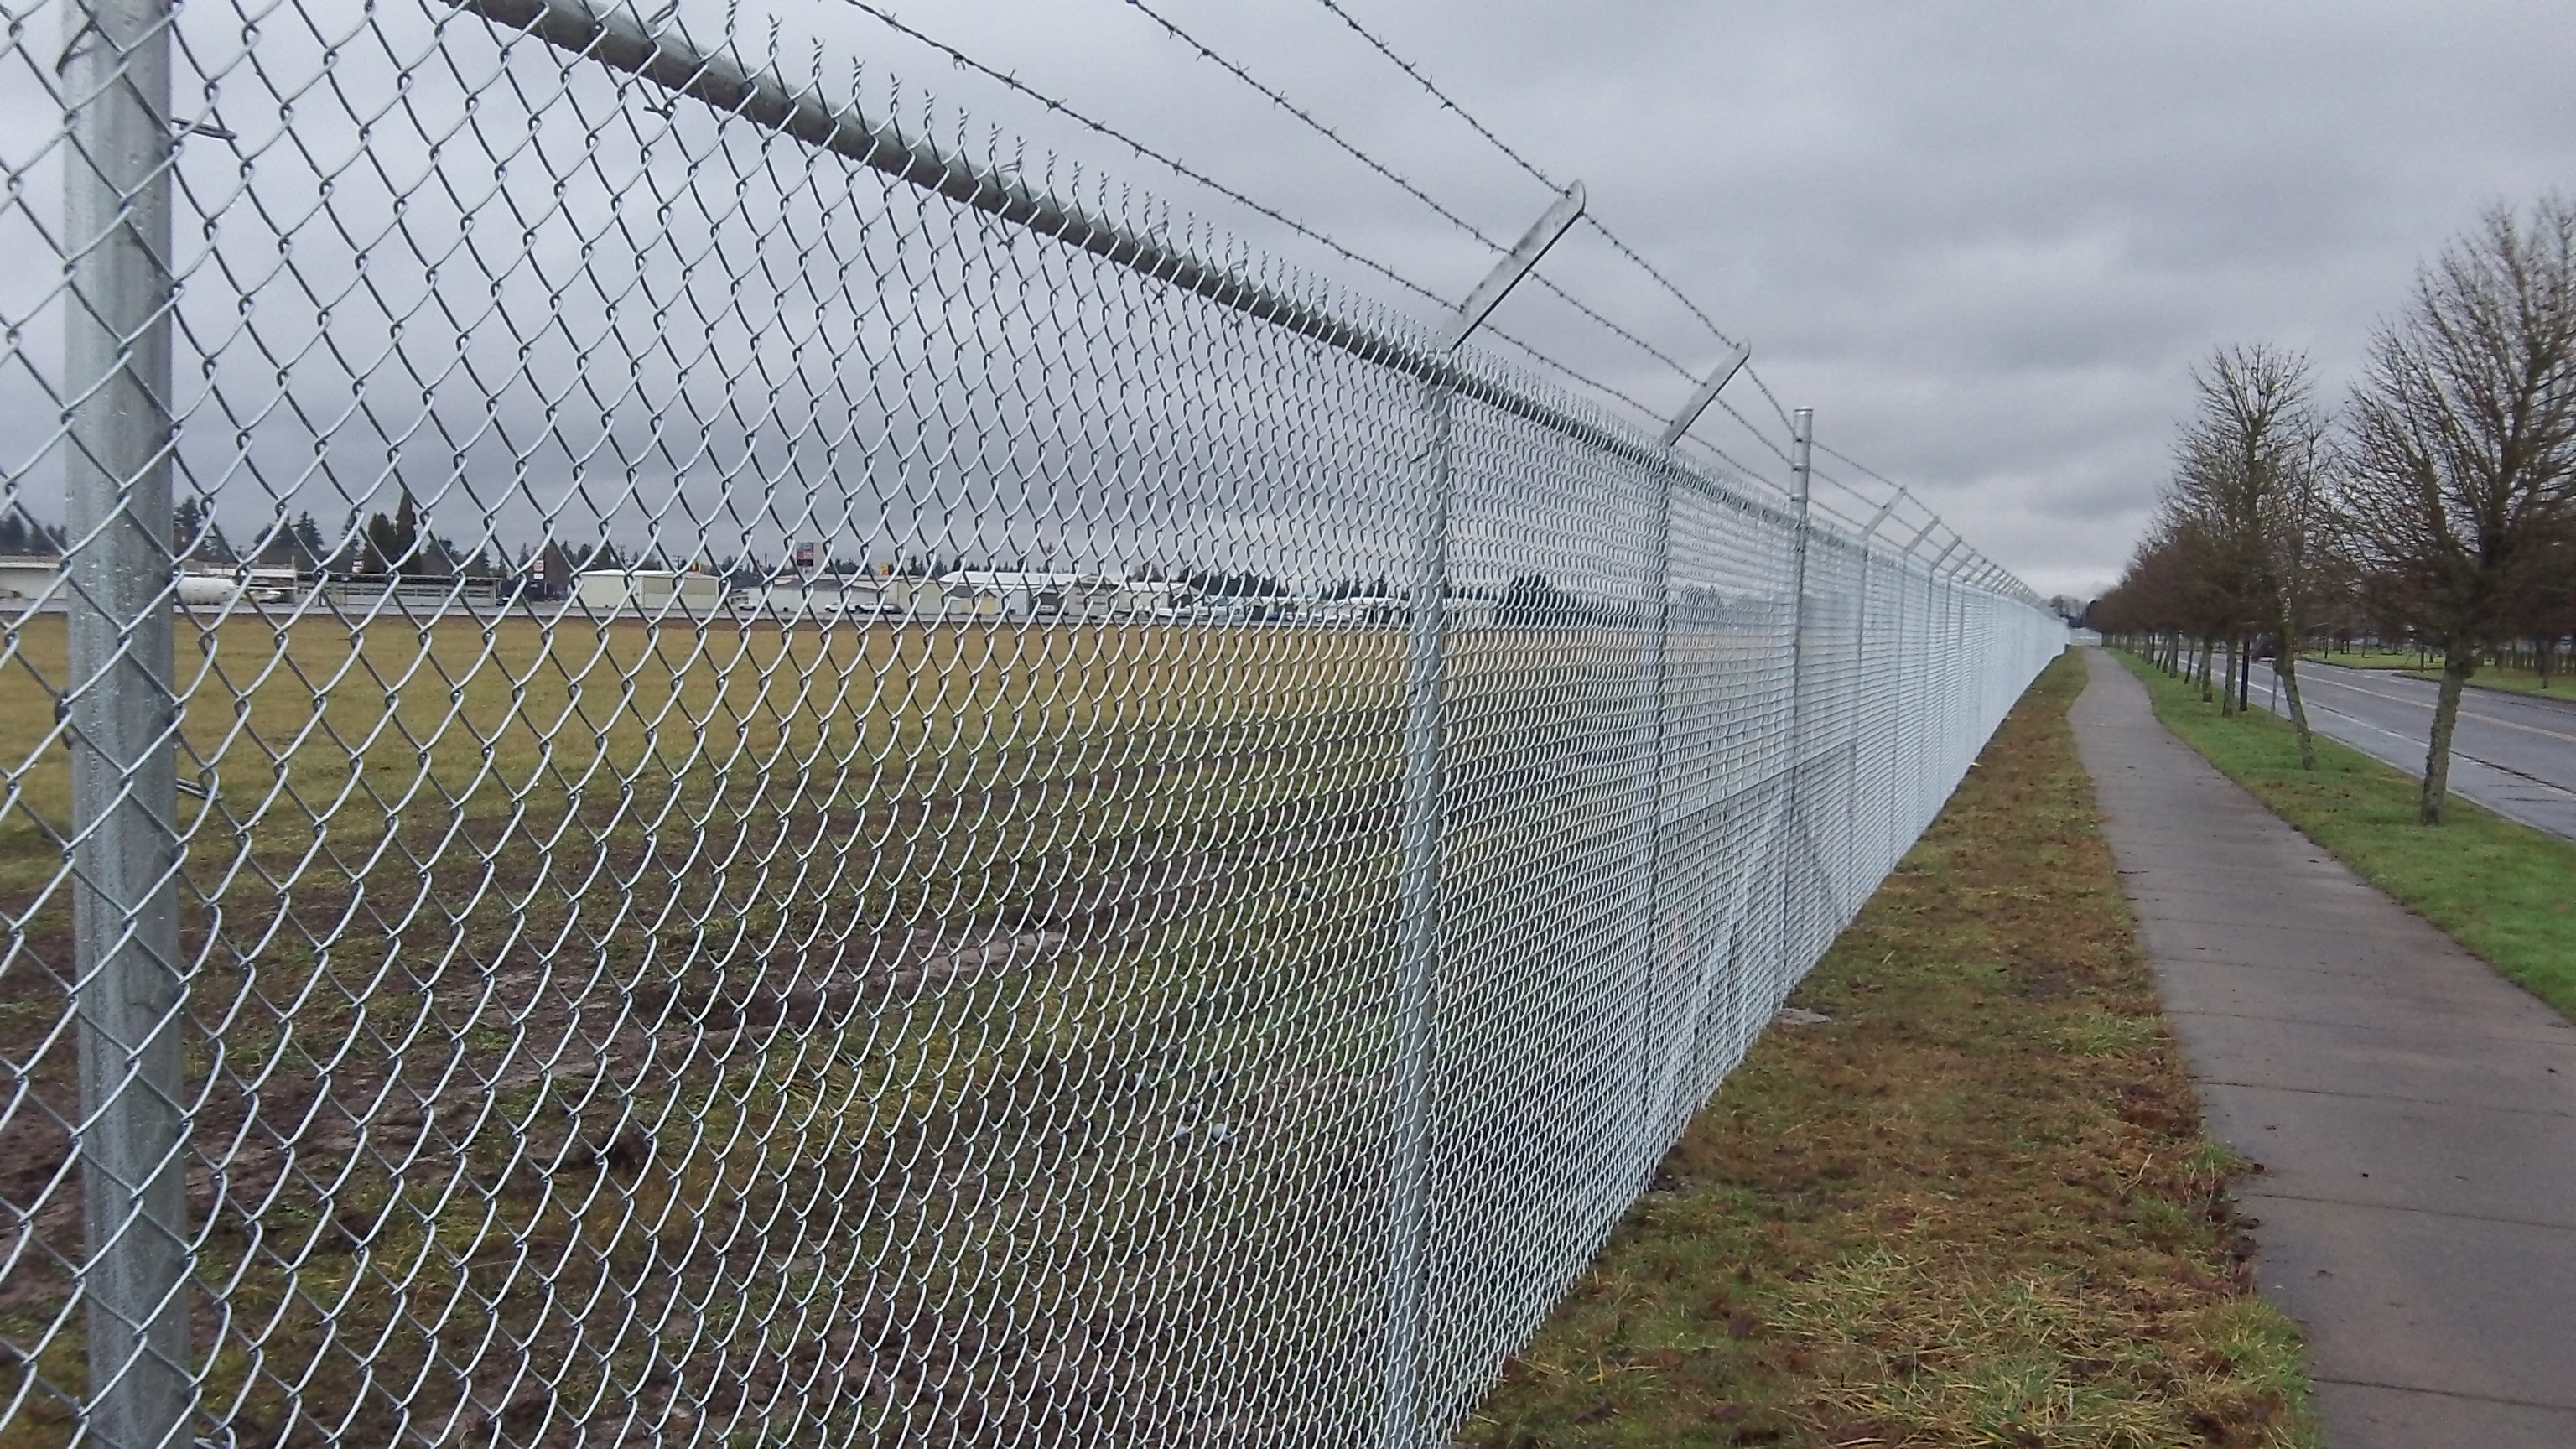 Airport fence anything for 'security